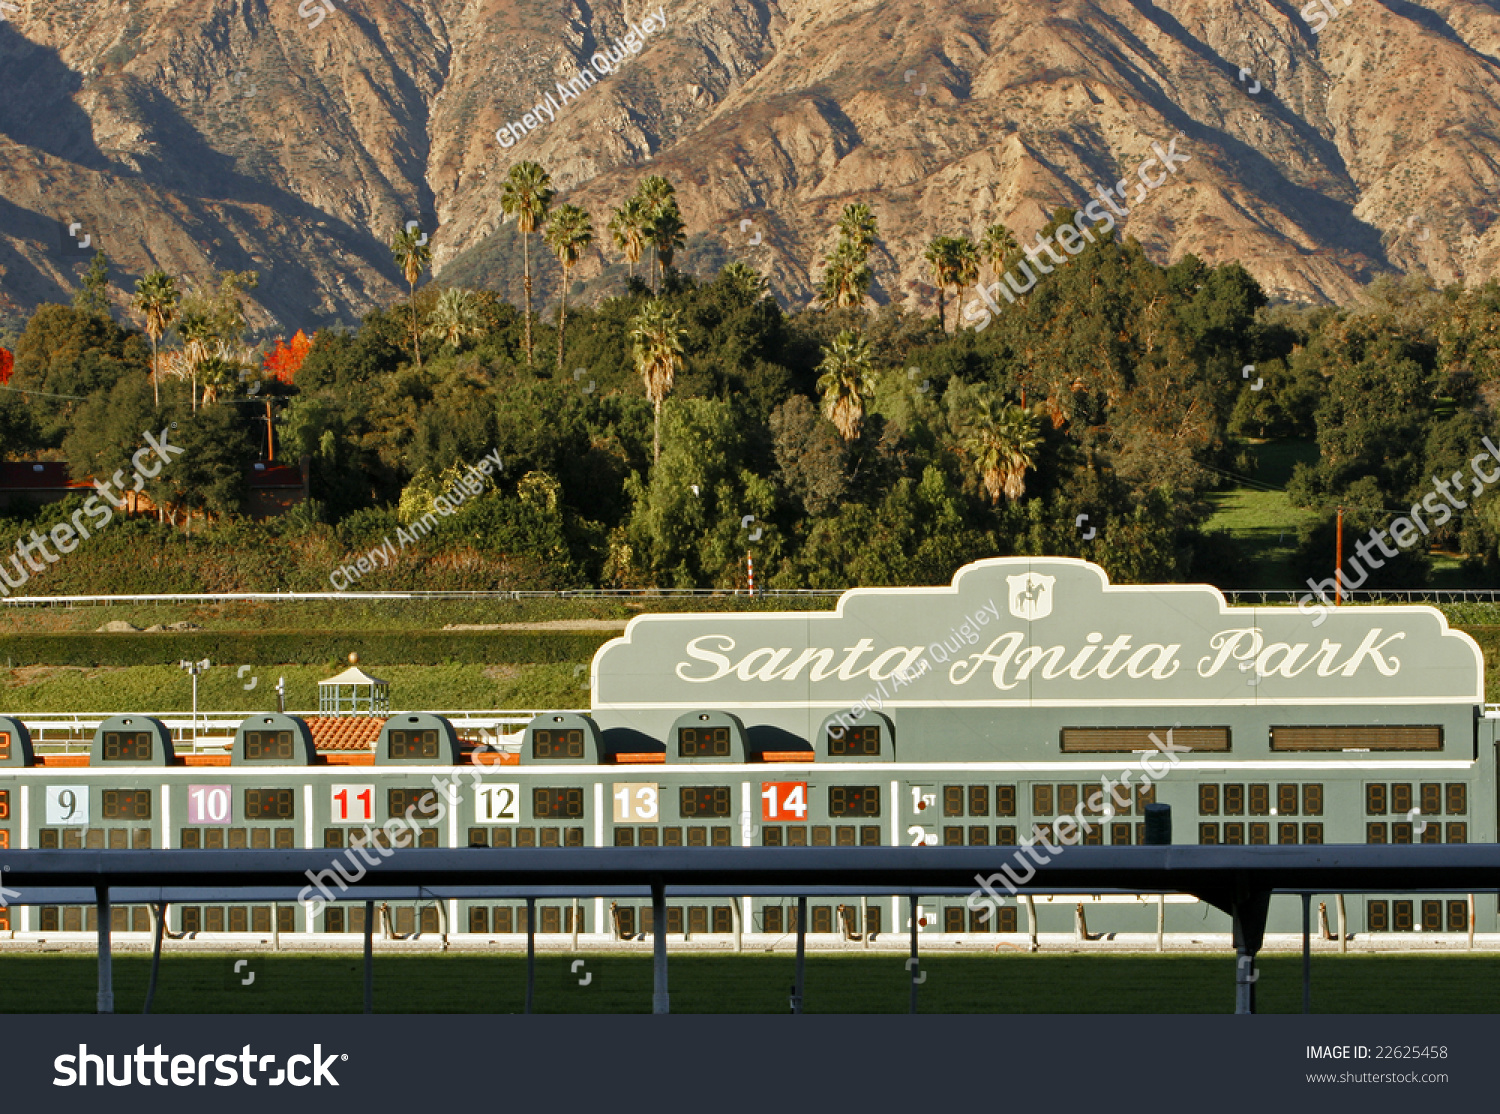 Arcadia Ca Dec 28 Santa Anita Park And The San Gabriel